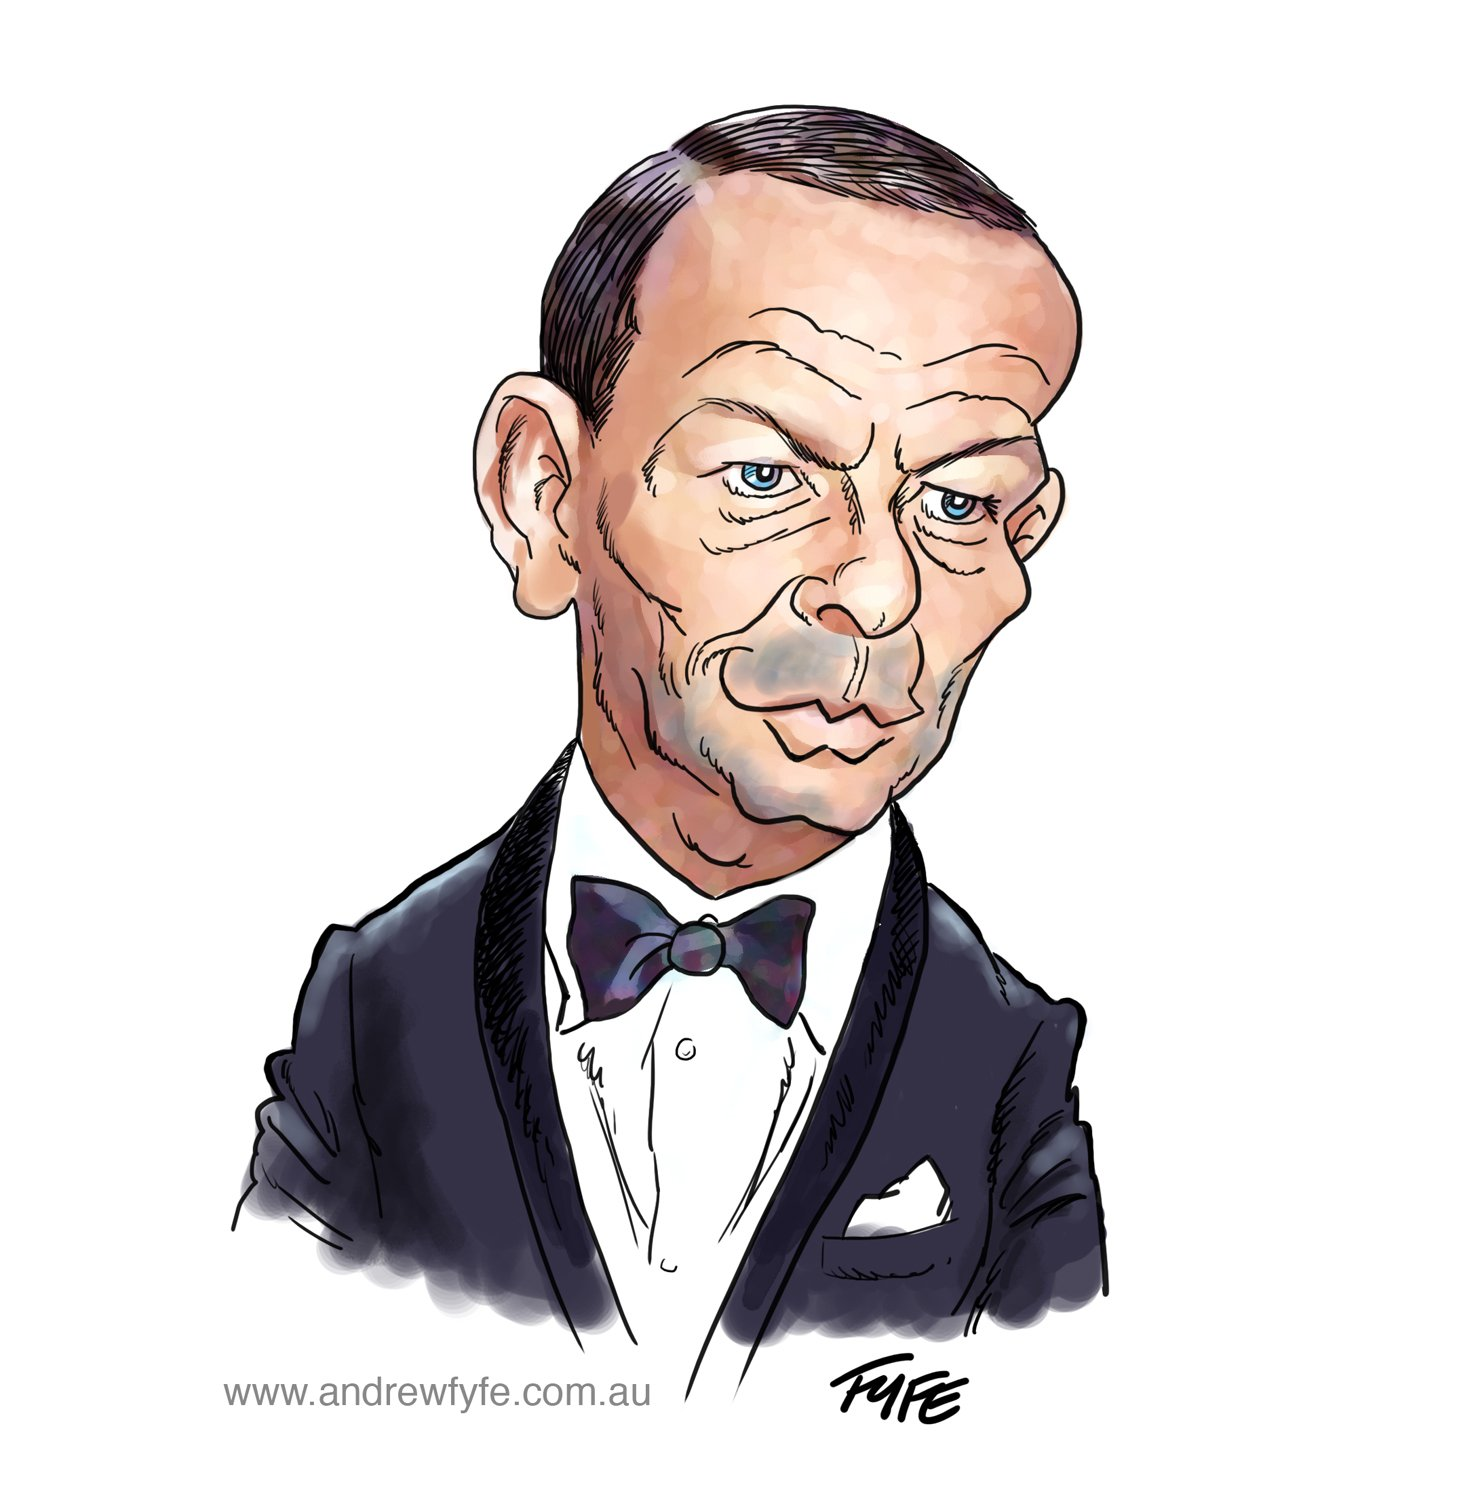 Frank Sinatra, Frank Sinatra caricature, Andrew Fyfe, caricatures